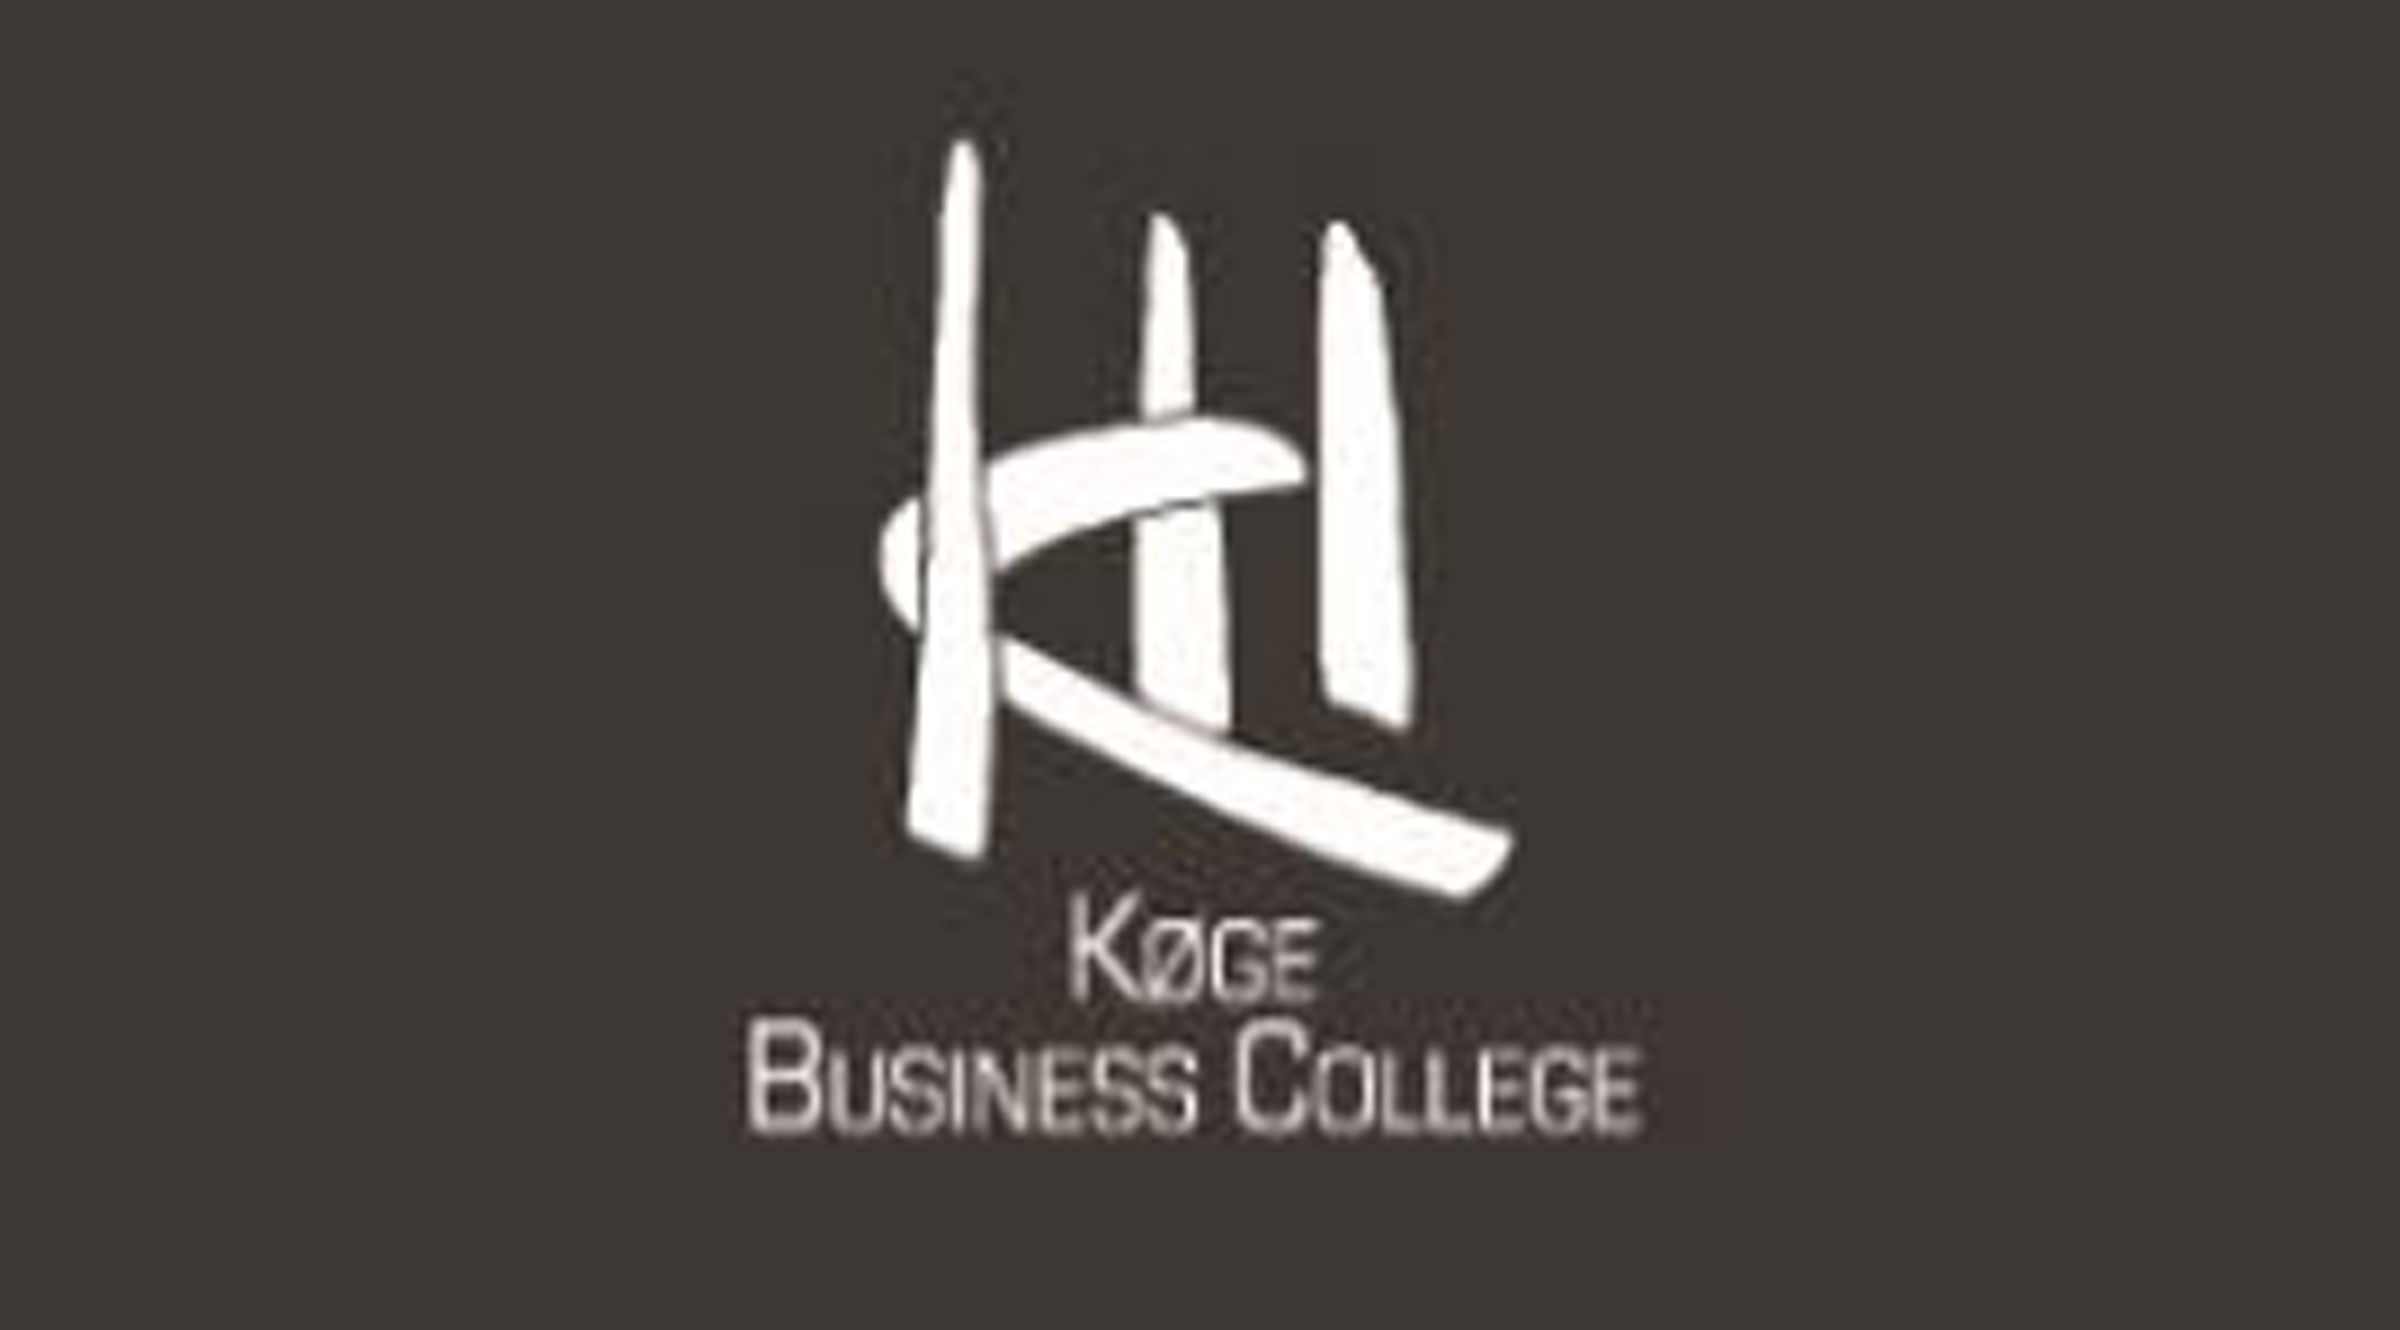 Koege business college kbc